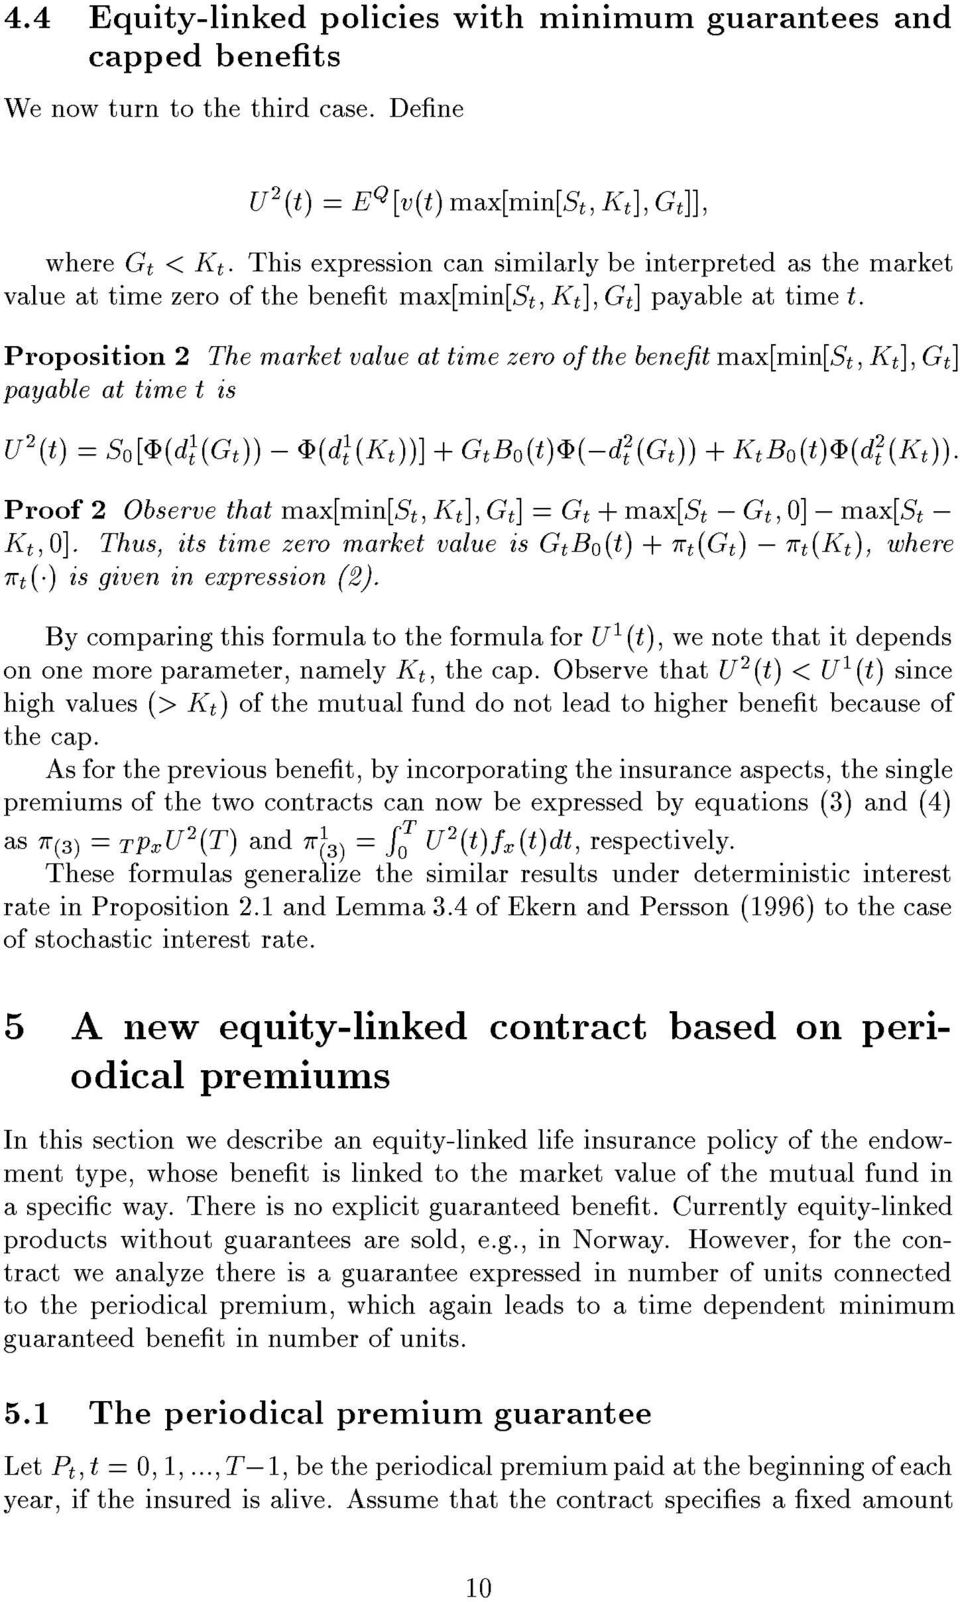 Proposition 2 The market value at time zero of the benet max[min[s t ;K t ];G t ] payable at time t is U 2 (t) =S 0 [(d 1 t(g t )), (d 1 t(k t ))] + G t B 0 (t)(,d 2 t (G t )) + K t B 0 (t)(d 2 t (K